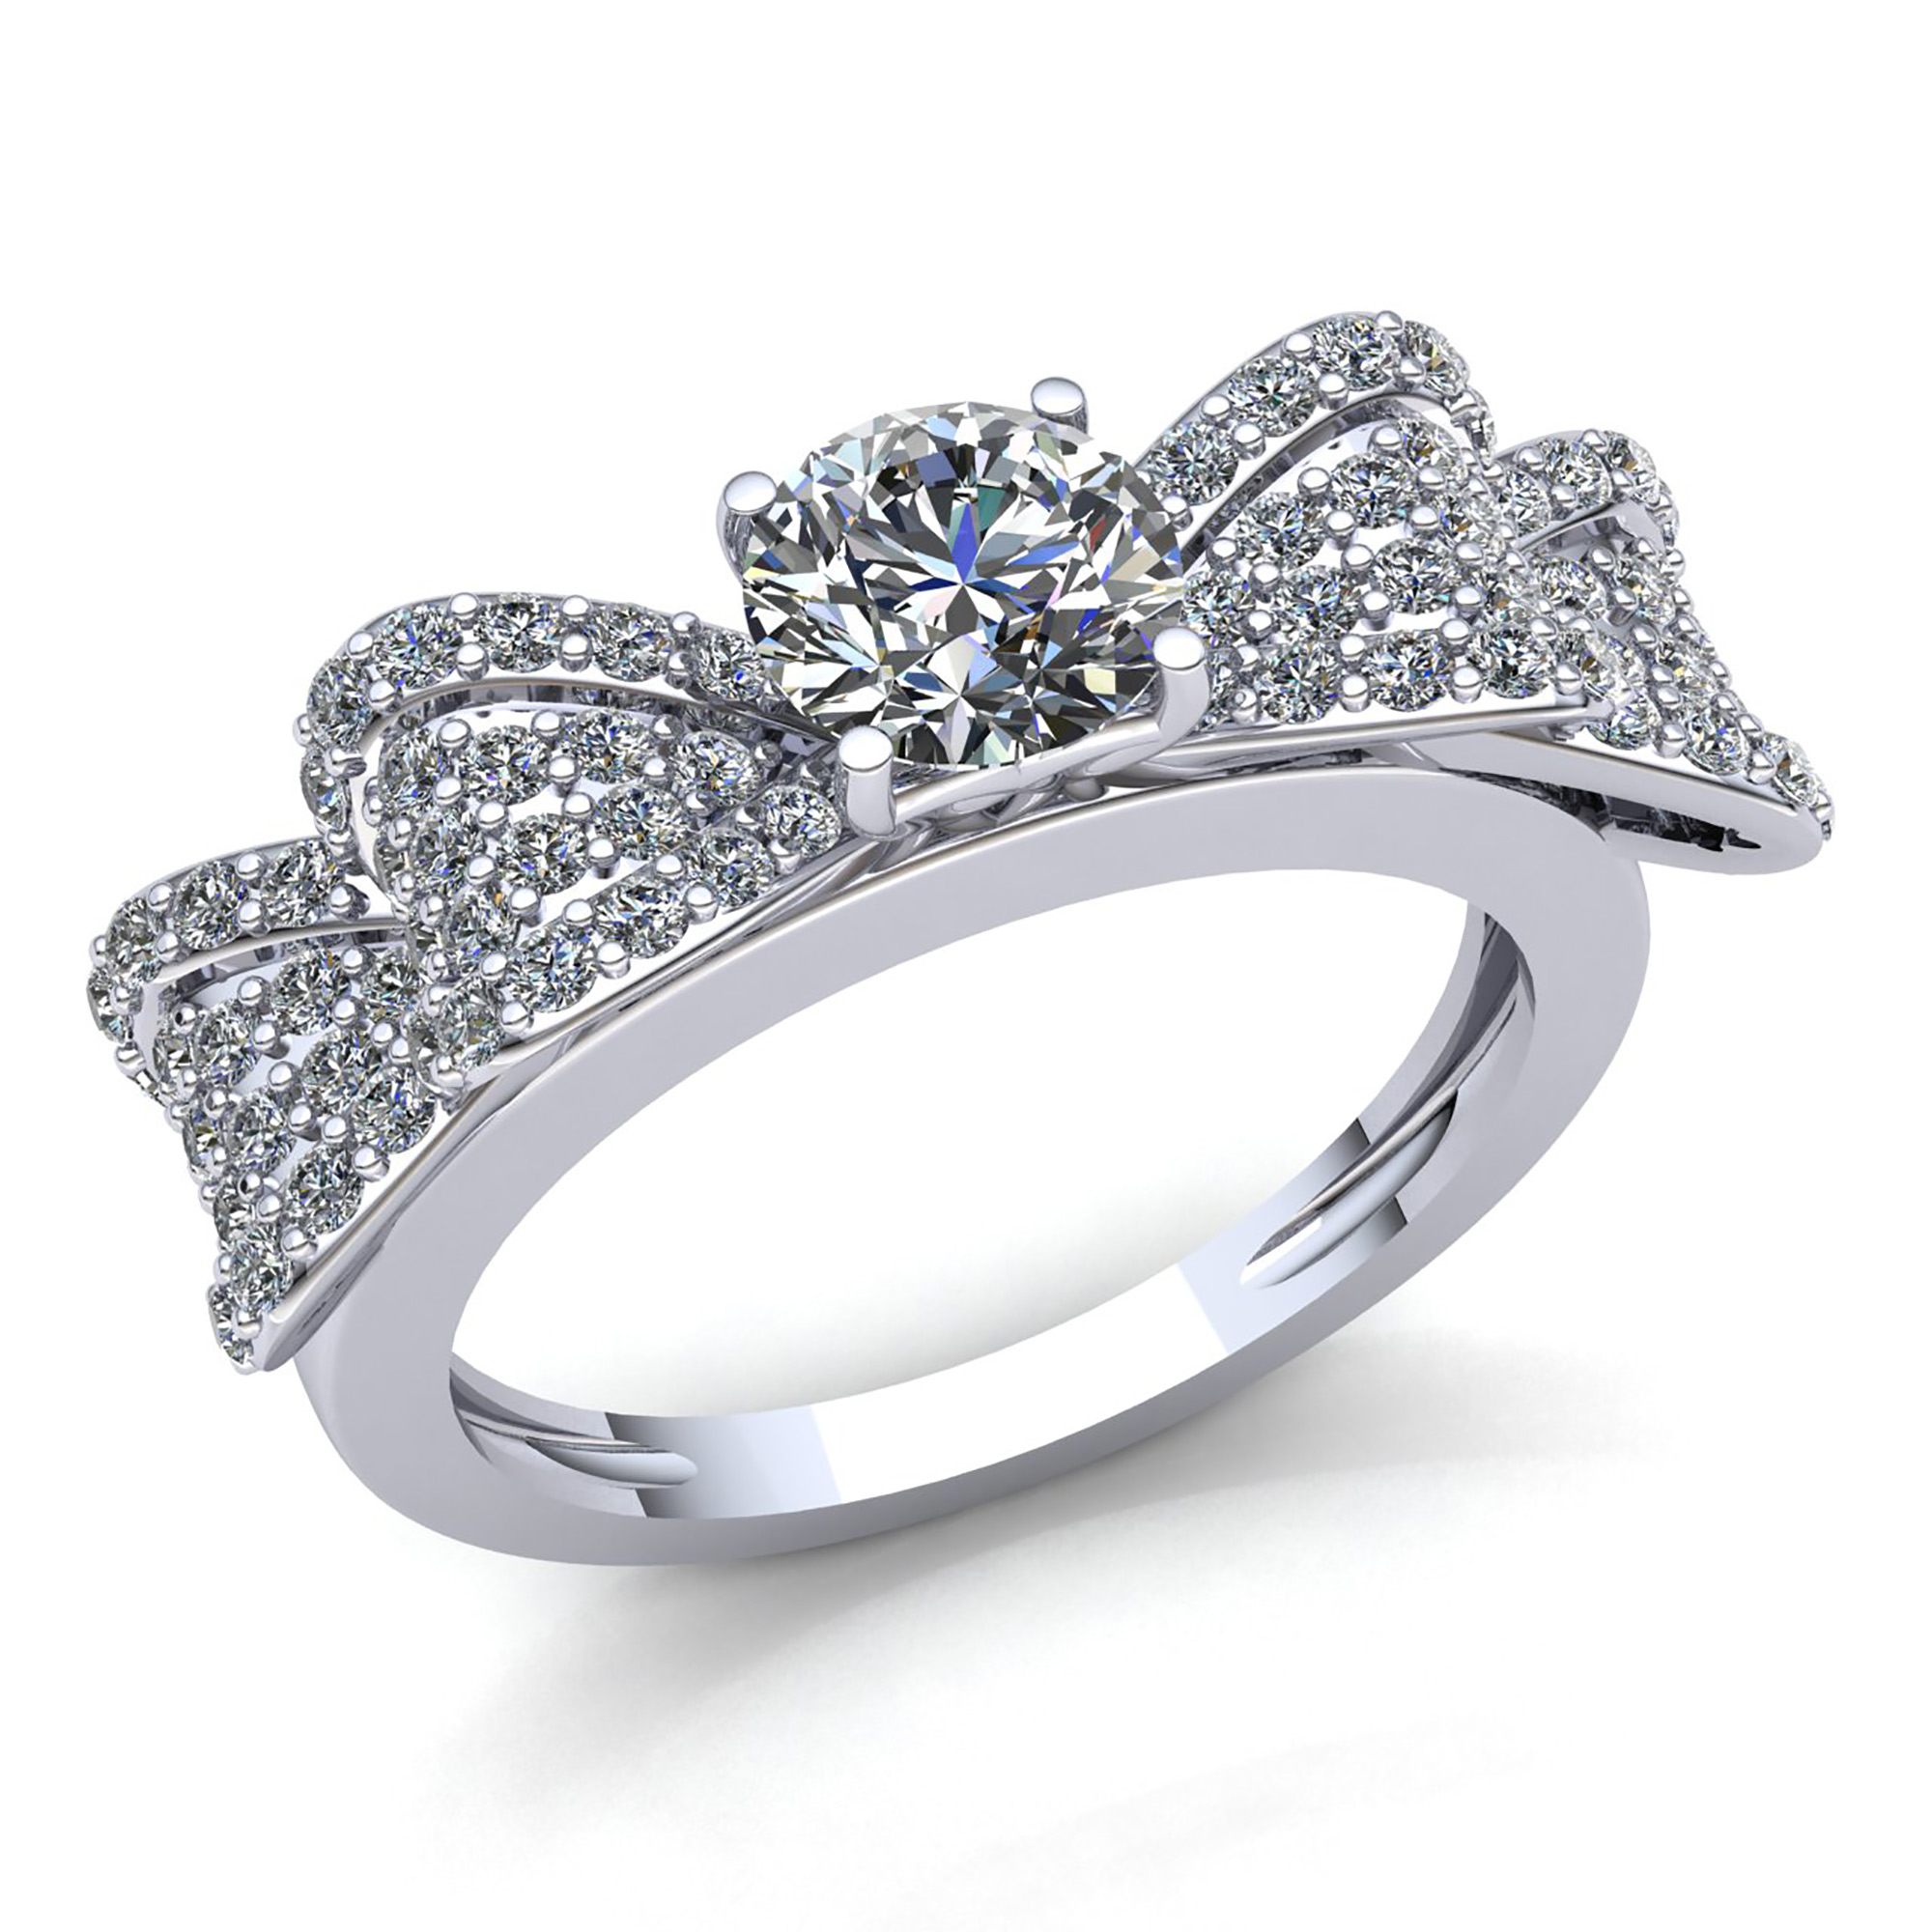 1ct round diamond ladies fancy cluster bow engagement ring. Black Bedroom Furniture Sets. Home Design Ideas